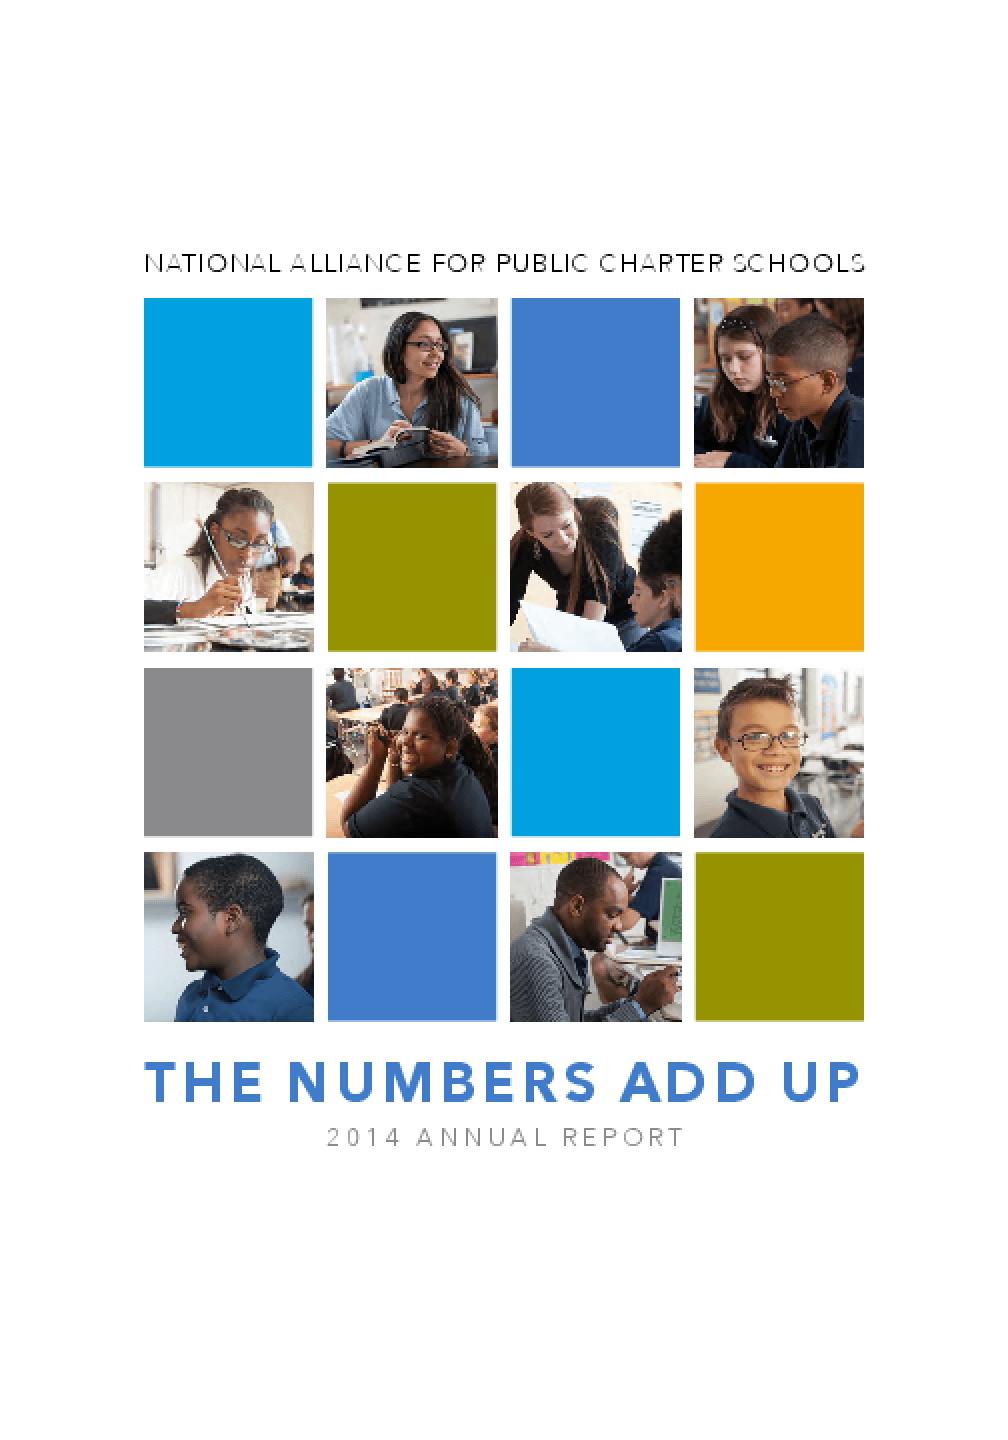 National Alliance for Public Charter Schools: The Numbers Add Up 2014 Annual Report